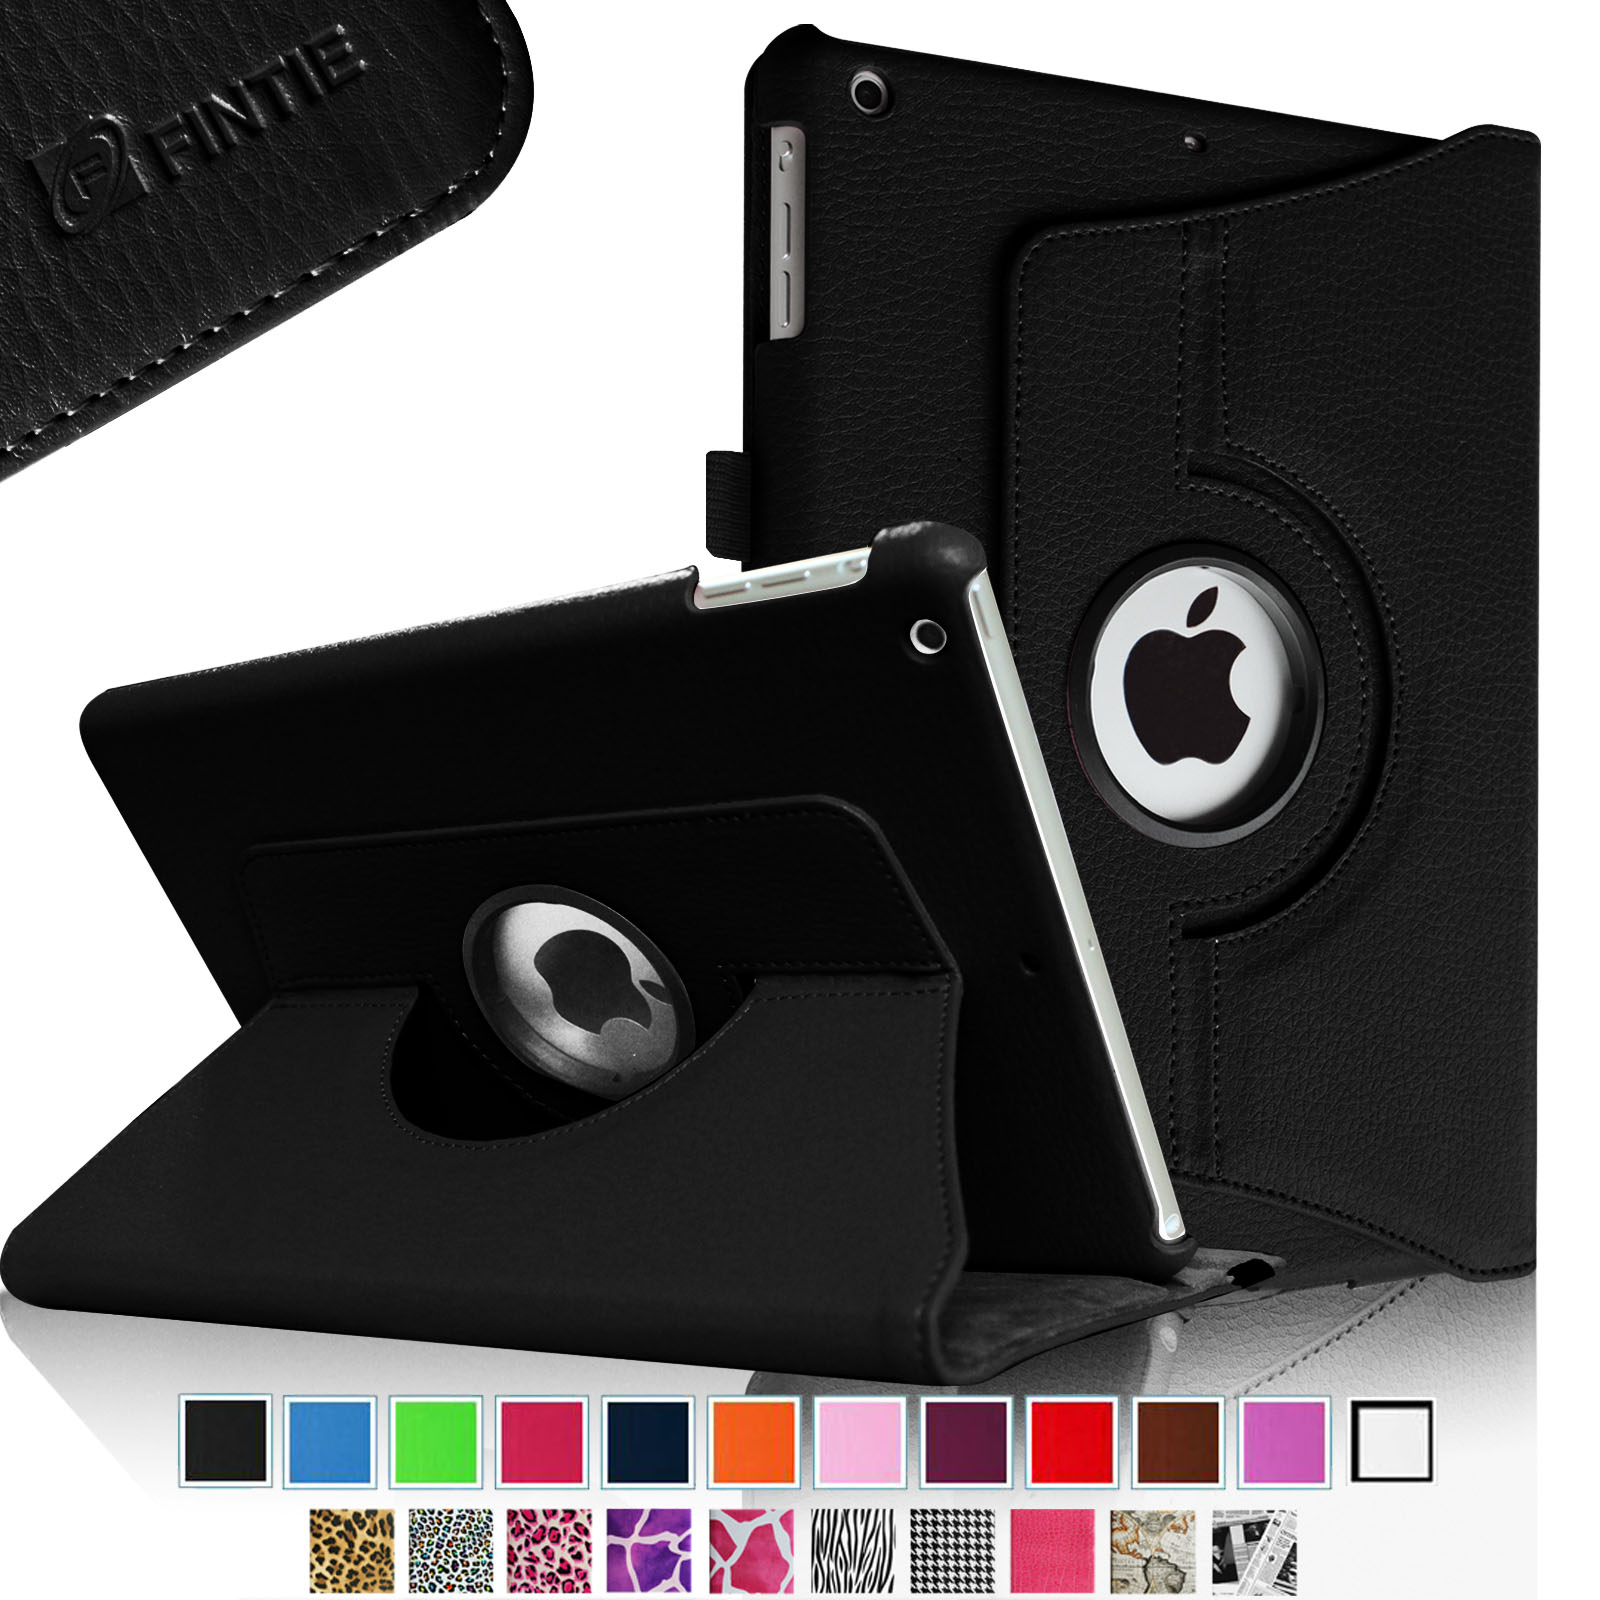 iPad mini 3 / iPad mini 2 / iPad mini Rotating Case - Fintie Multi-Angle Stand Smart Cover with Auto Sleep/Wake, Black